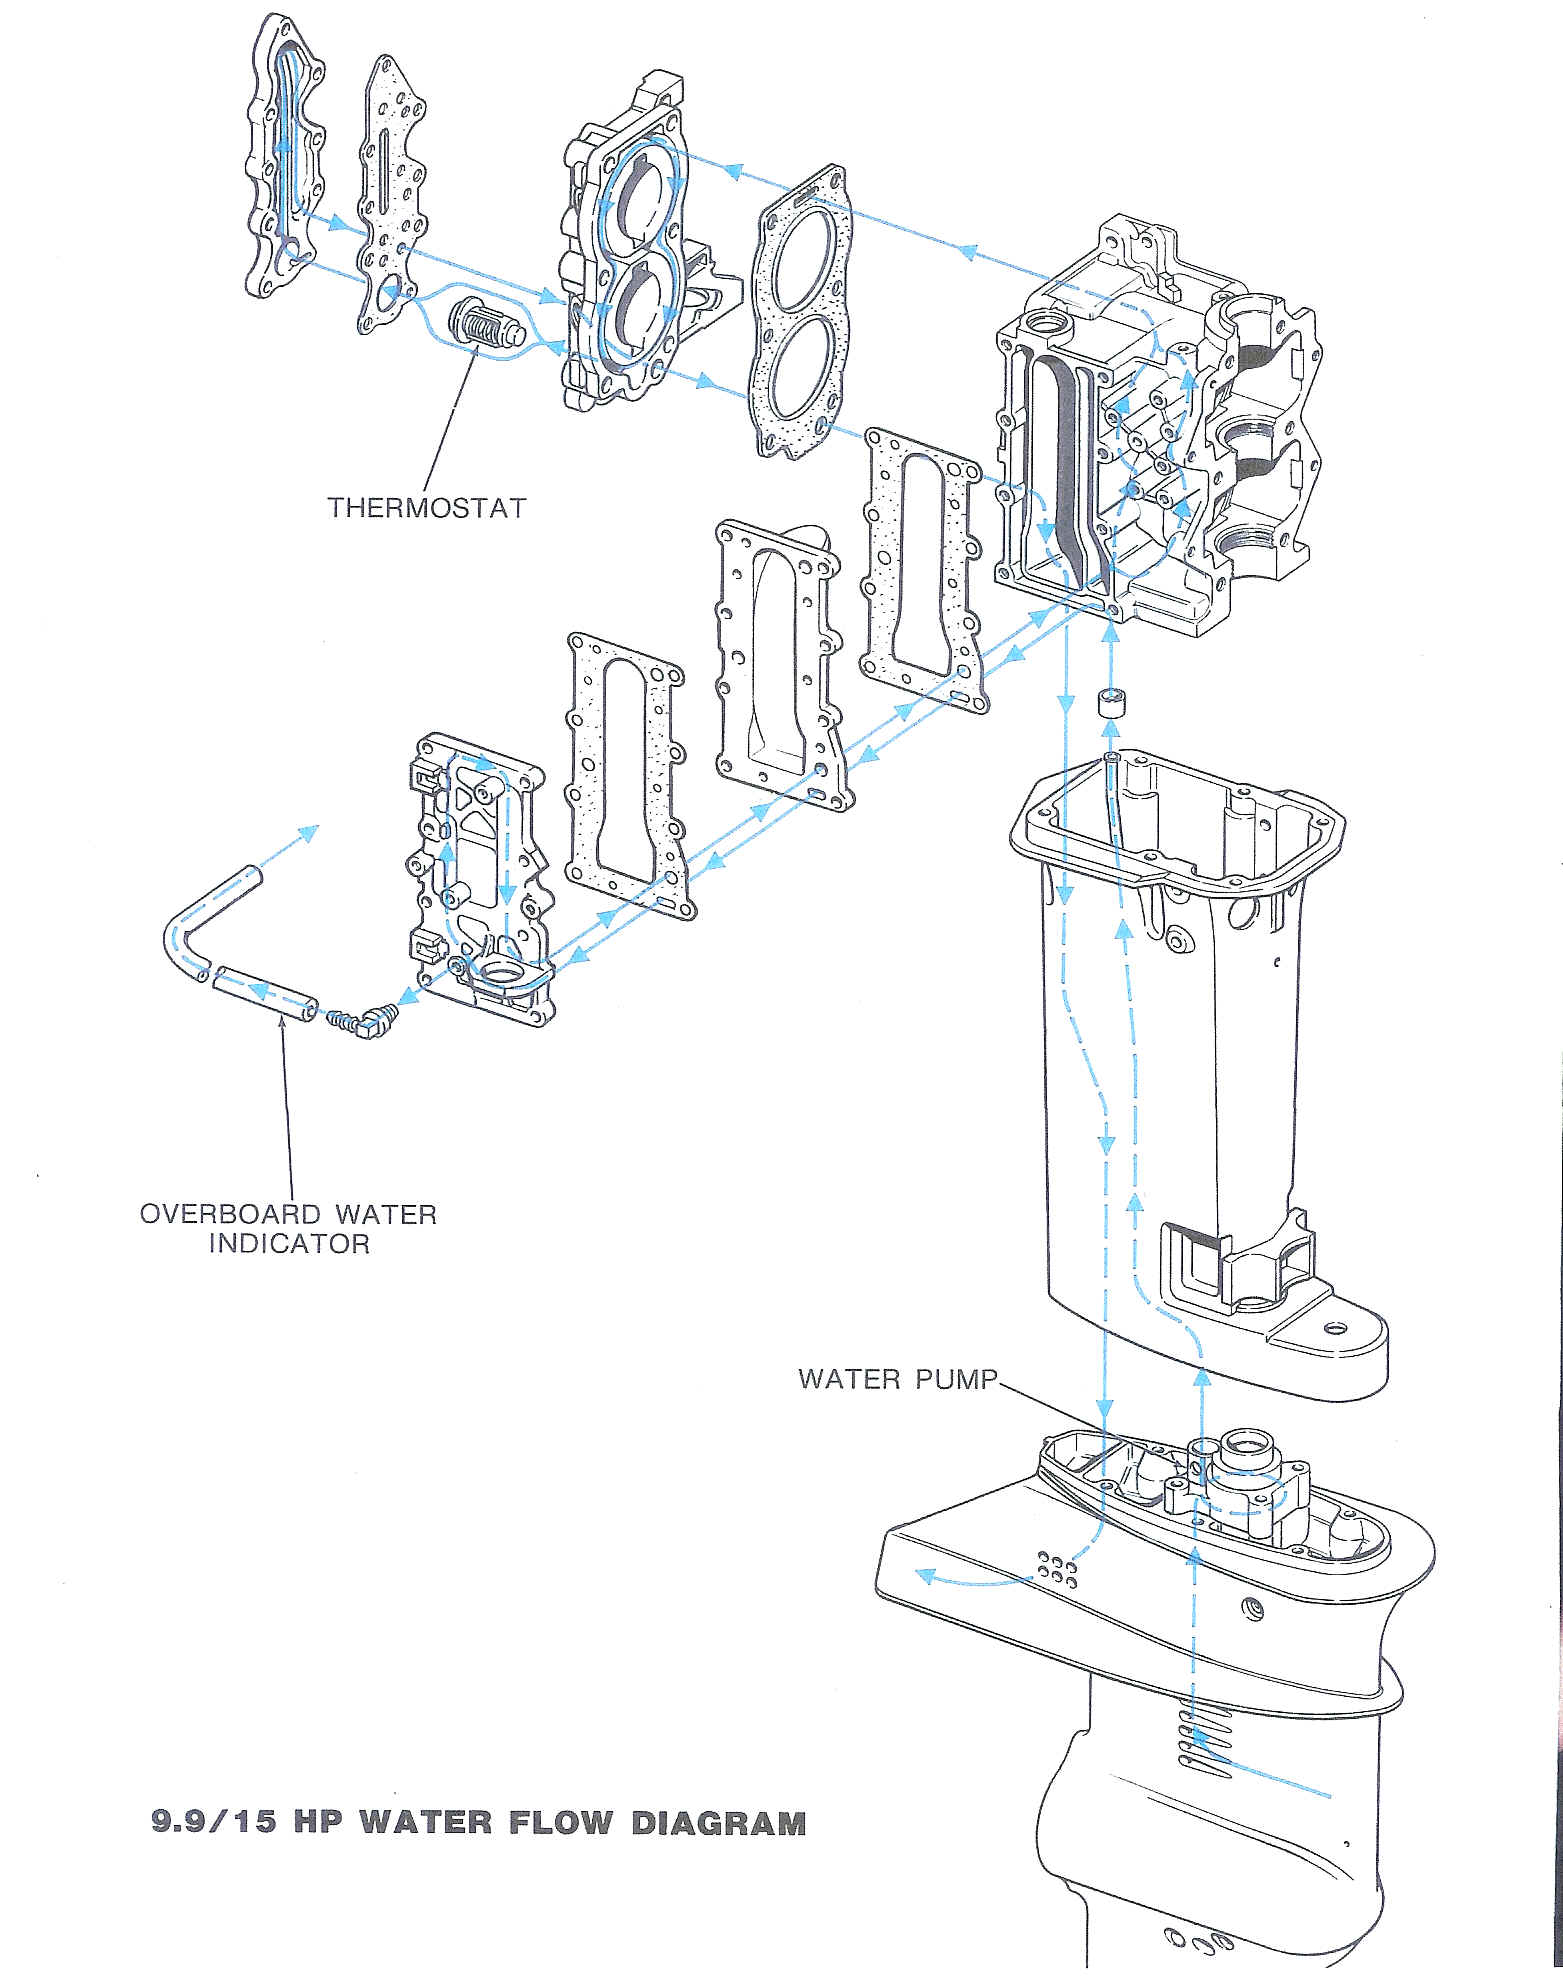 Outboard Motor Water Flow Diagram